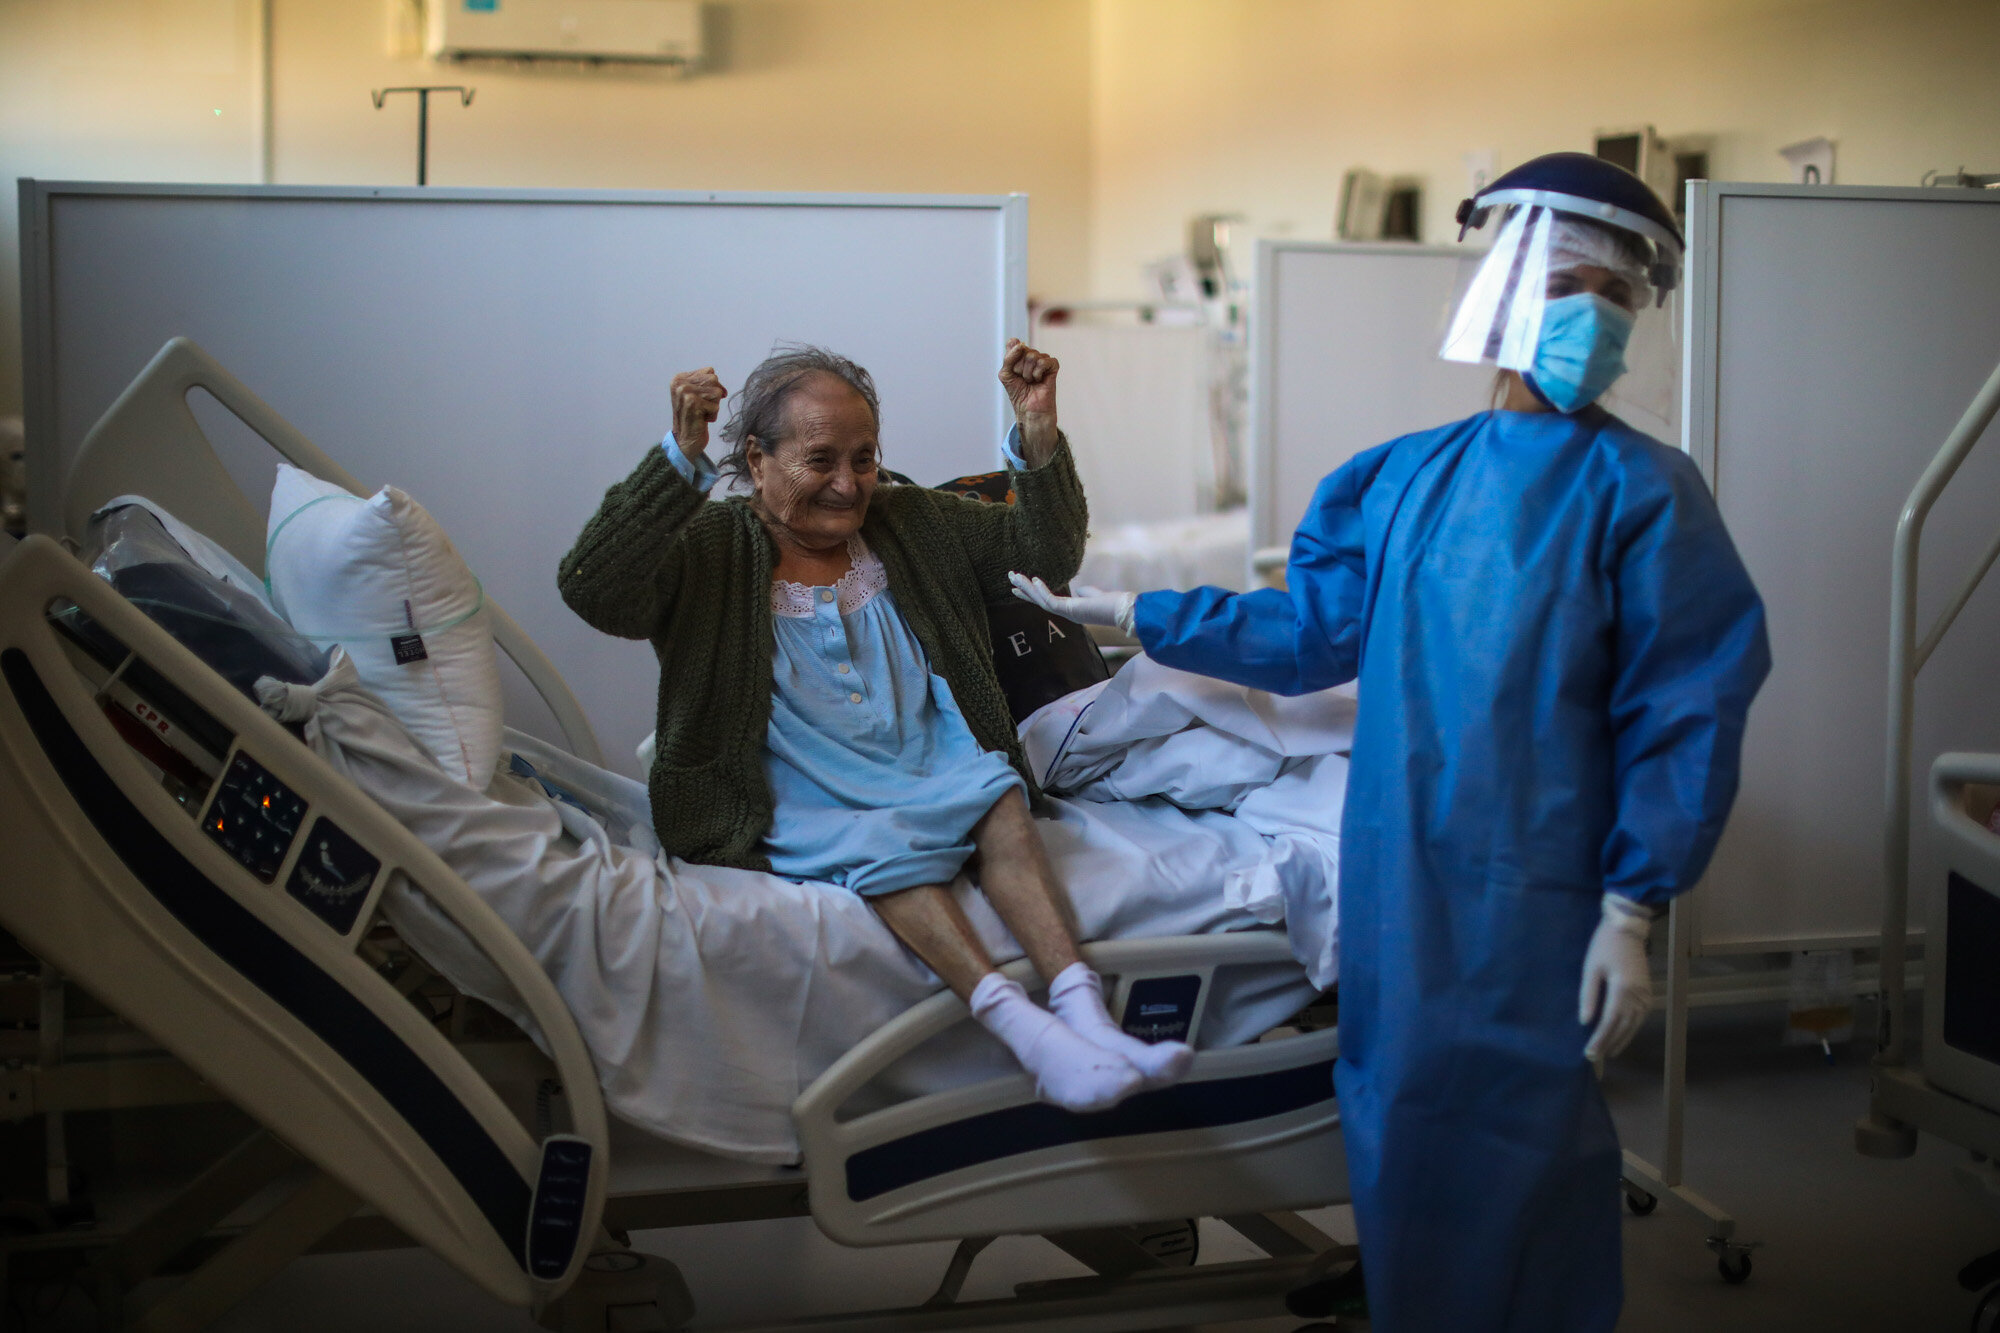 Blanca Ortiz, 84, celebrates after learning from nurses that she will be dismissed from the Eurnekian Ezeiza Hospital, on the outskirts of Buenos Aires, Argentina, on Aug. 13, 2020, several weeks after being admitted with COVID-19. (AP Photo/Natacha Pisarenko)